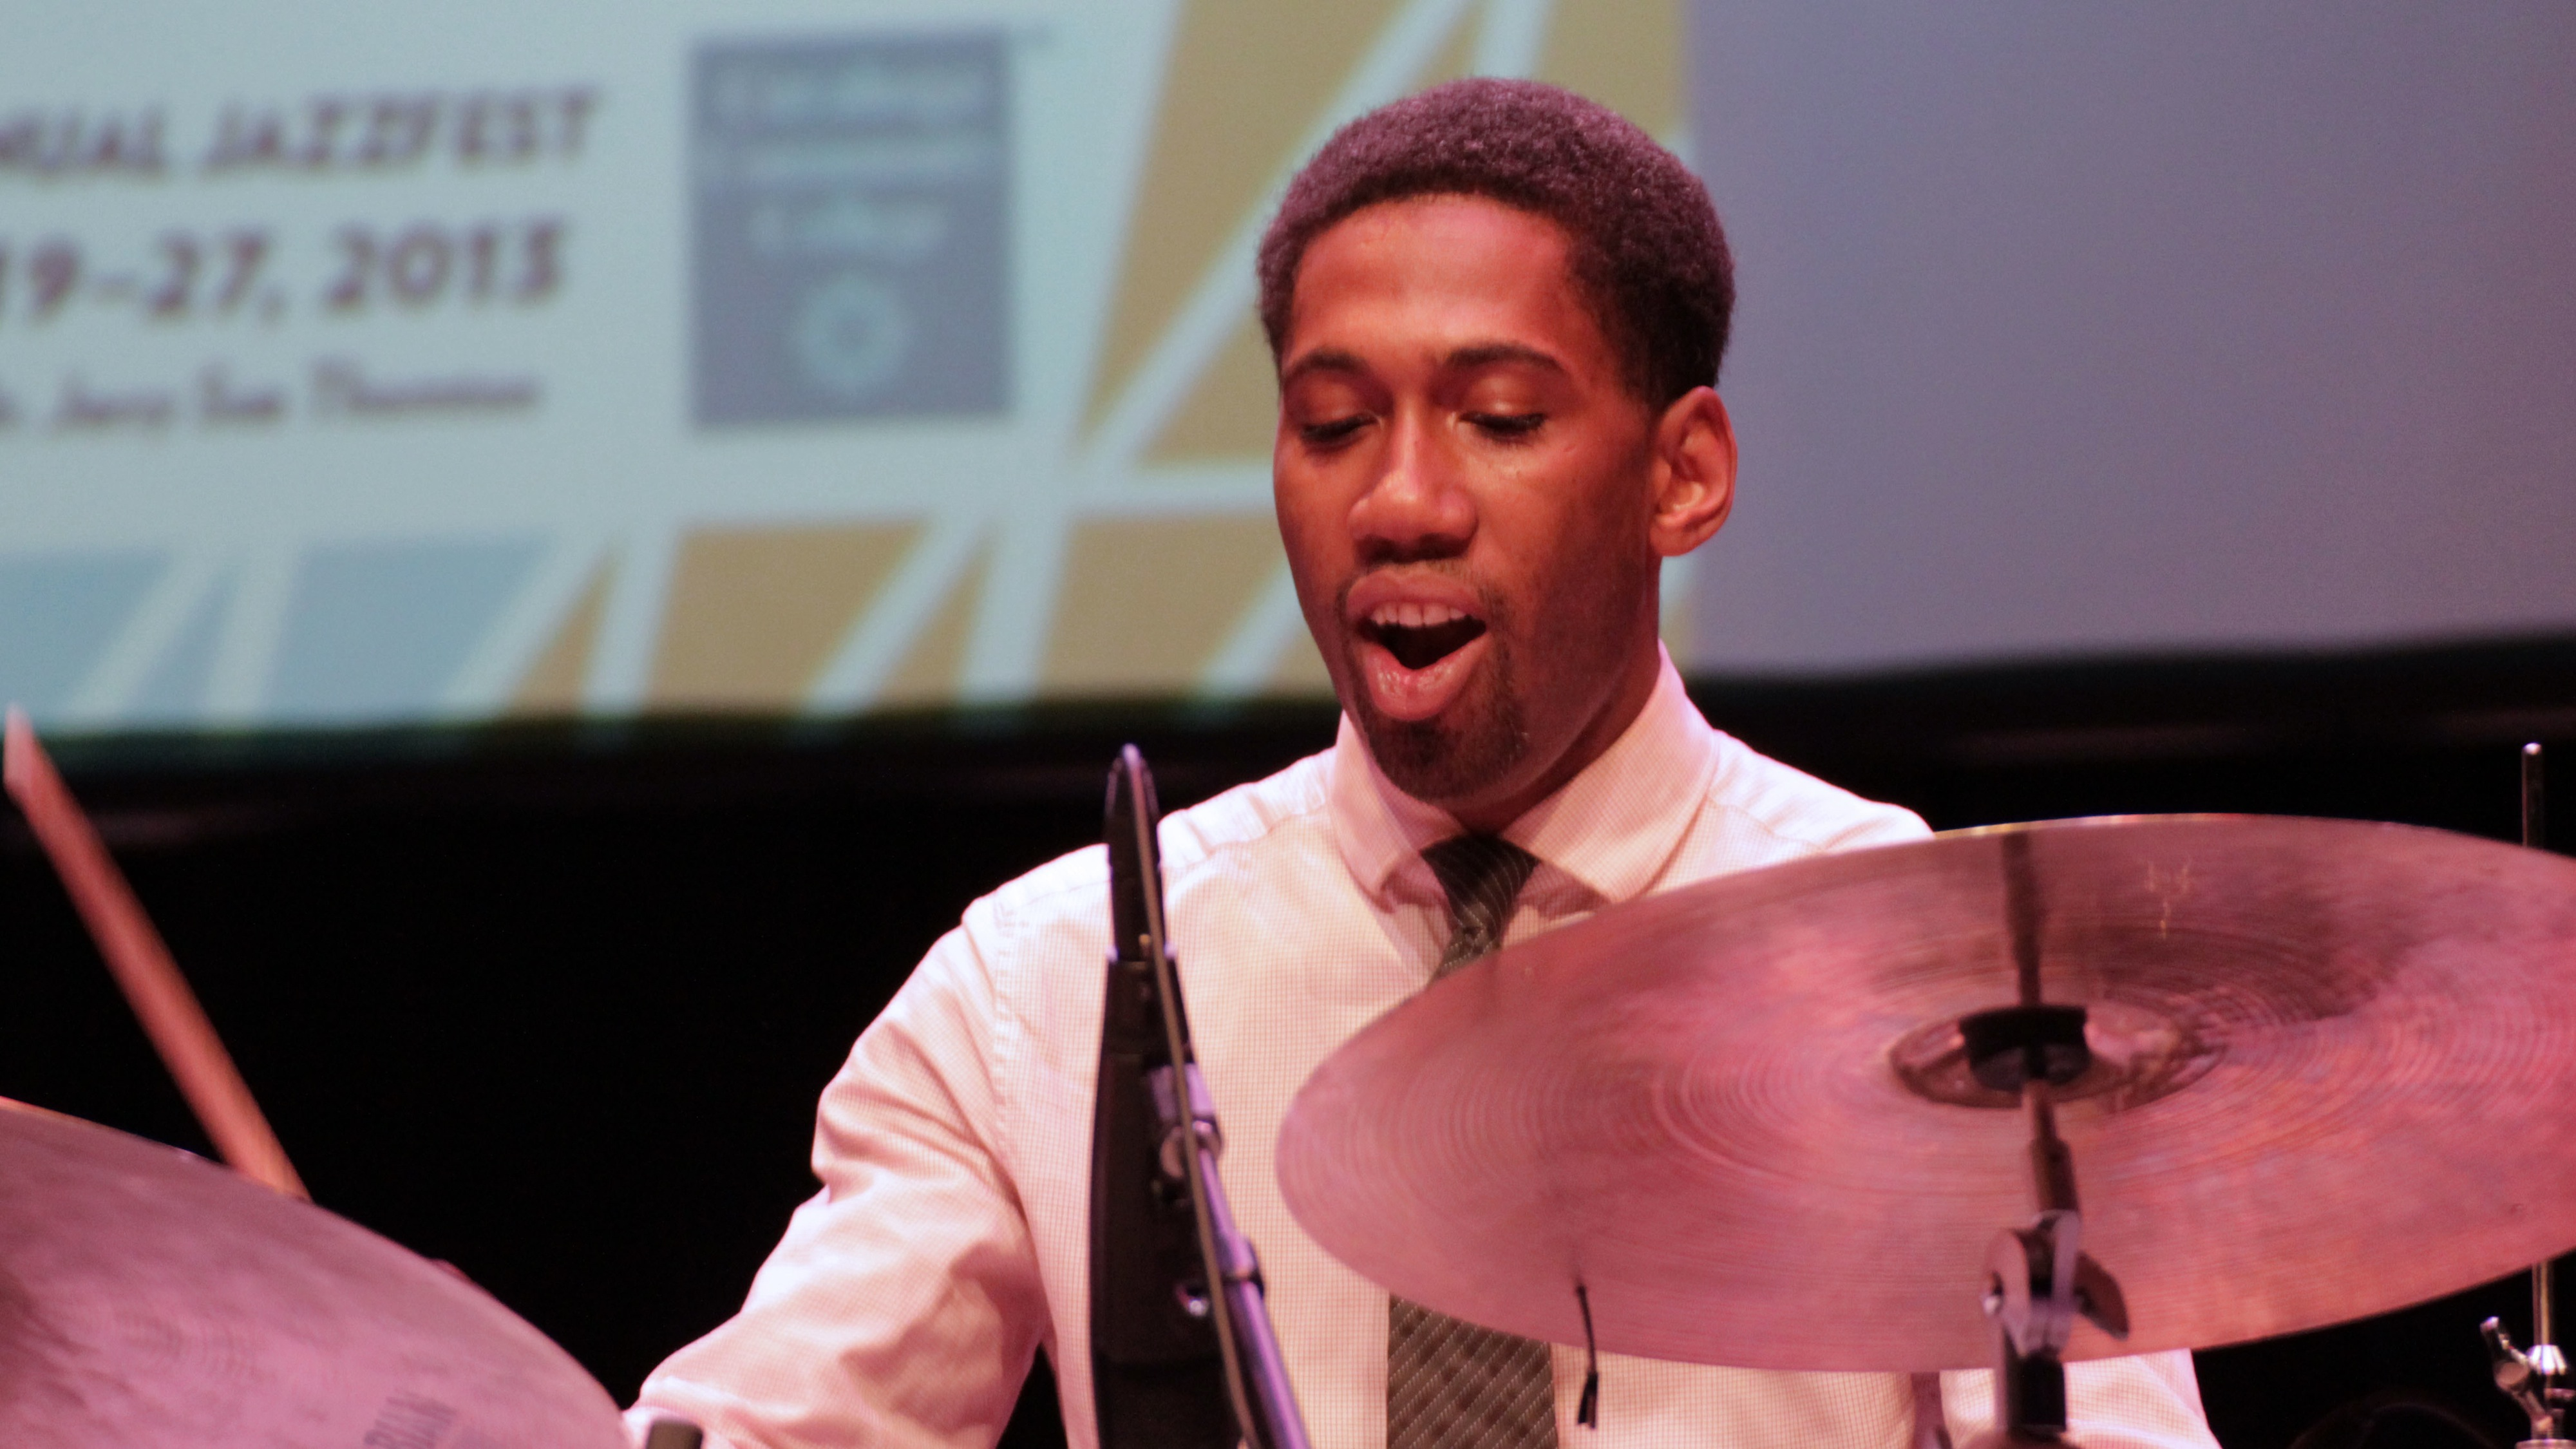 Lawrence leathers at tri-c jazzfest cleveland 2013